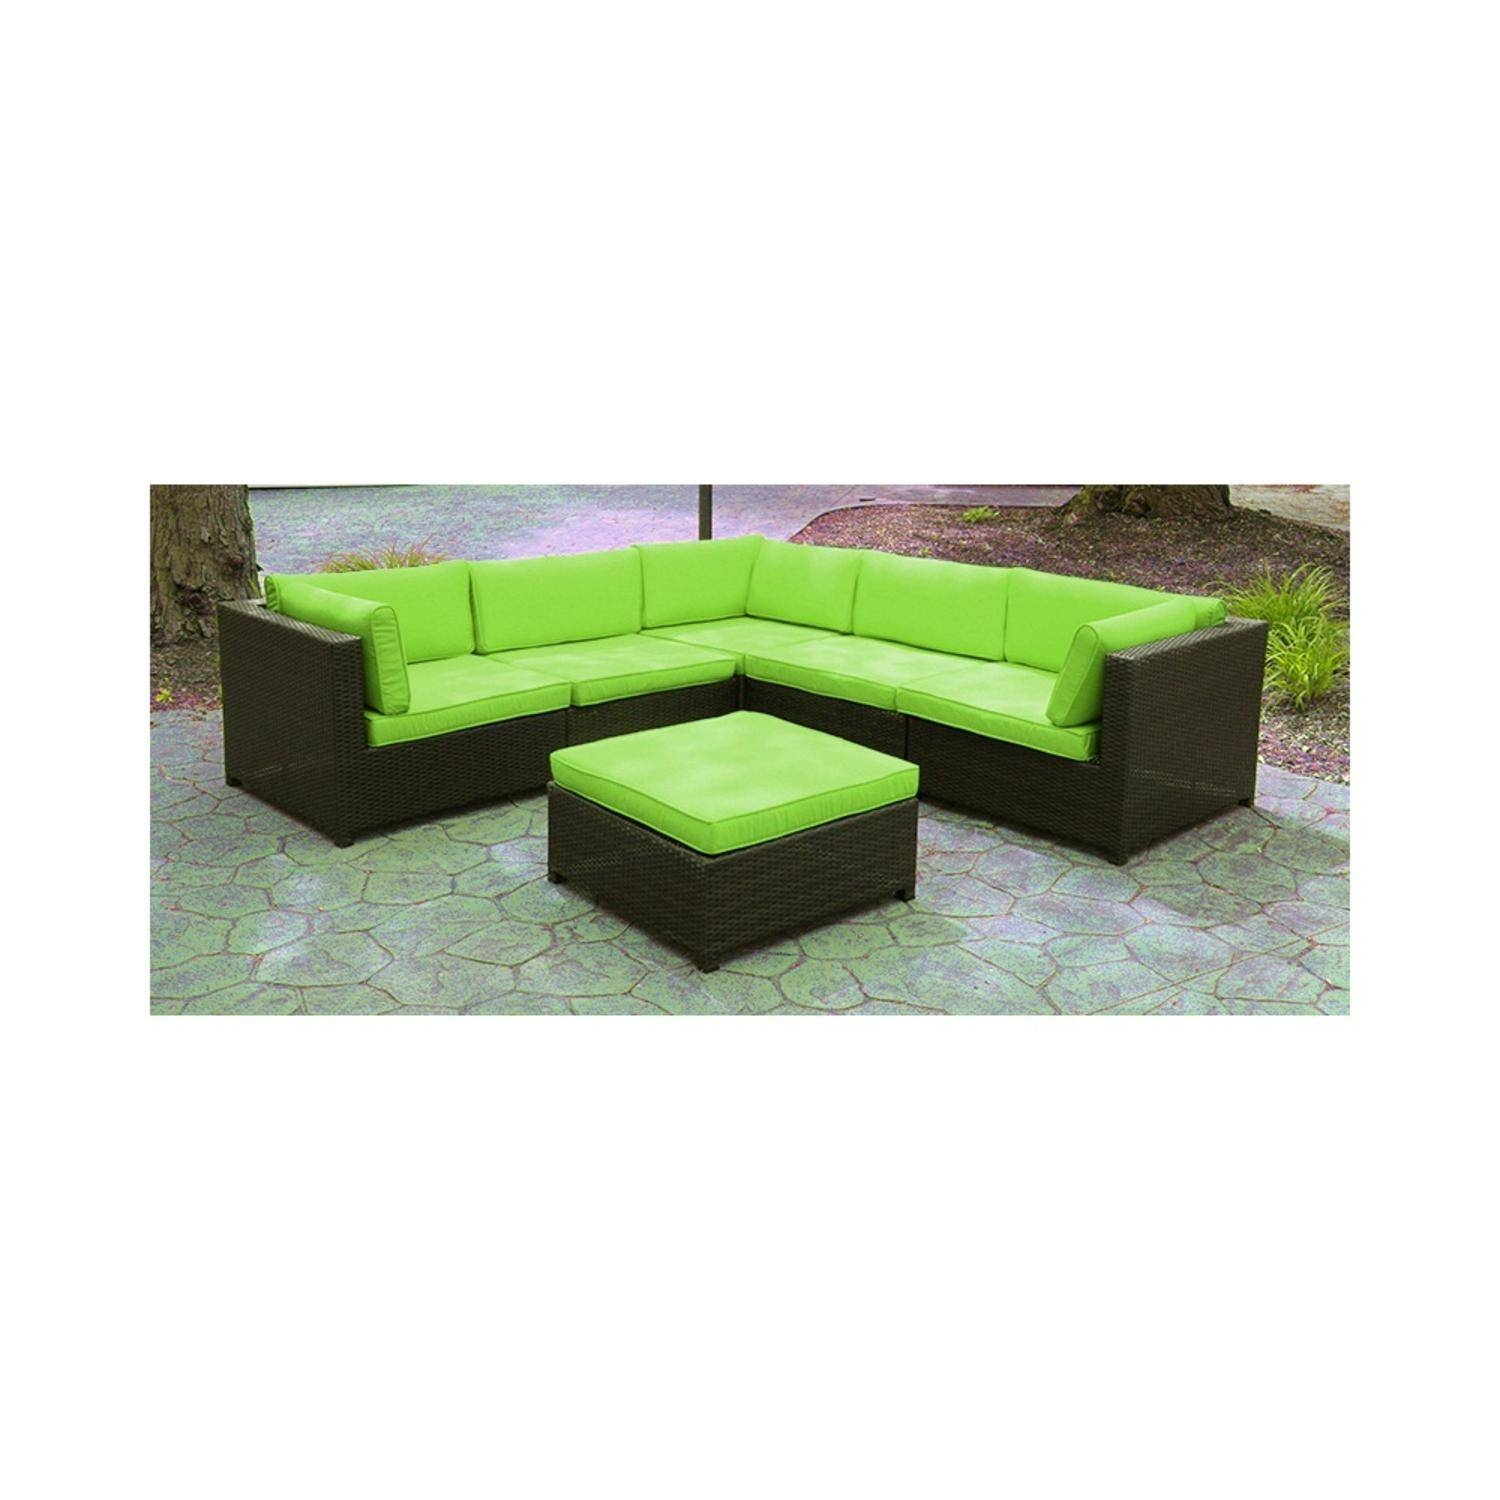 Black Resin Wicker Outdoor Furniture Sectional Sofa Set - Lime with Green Sectional Sofa (Image 11 of 30)